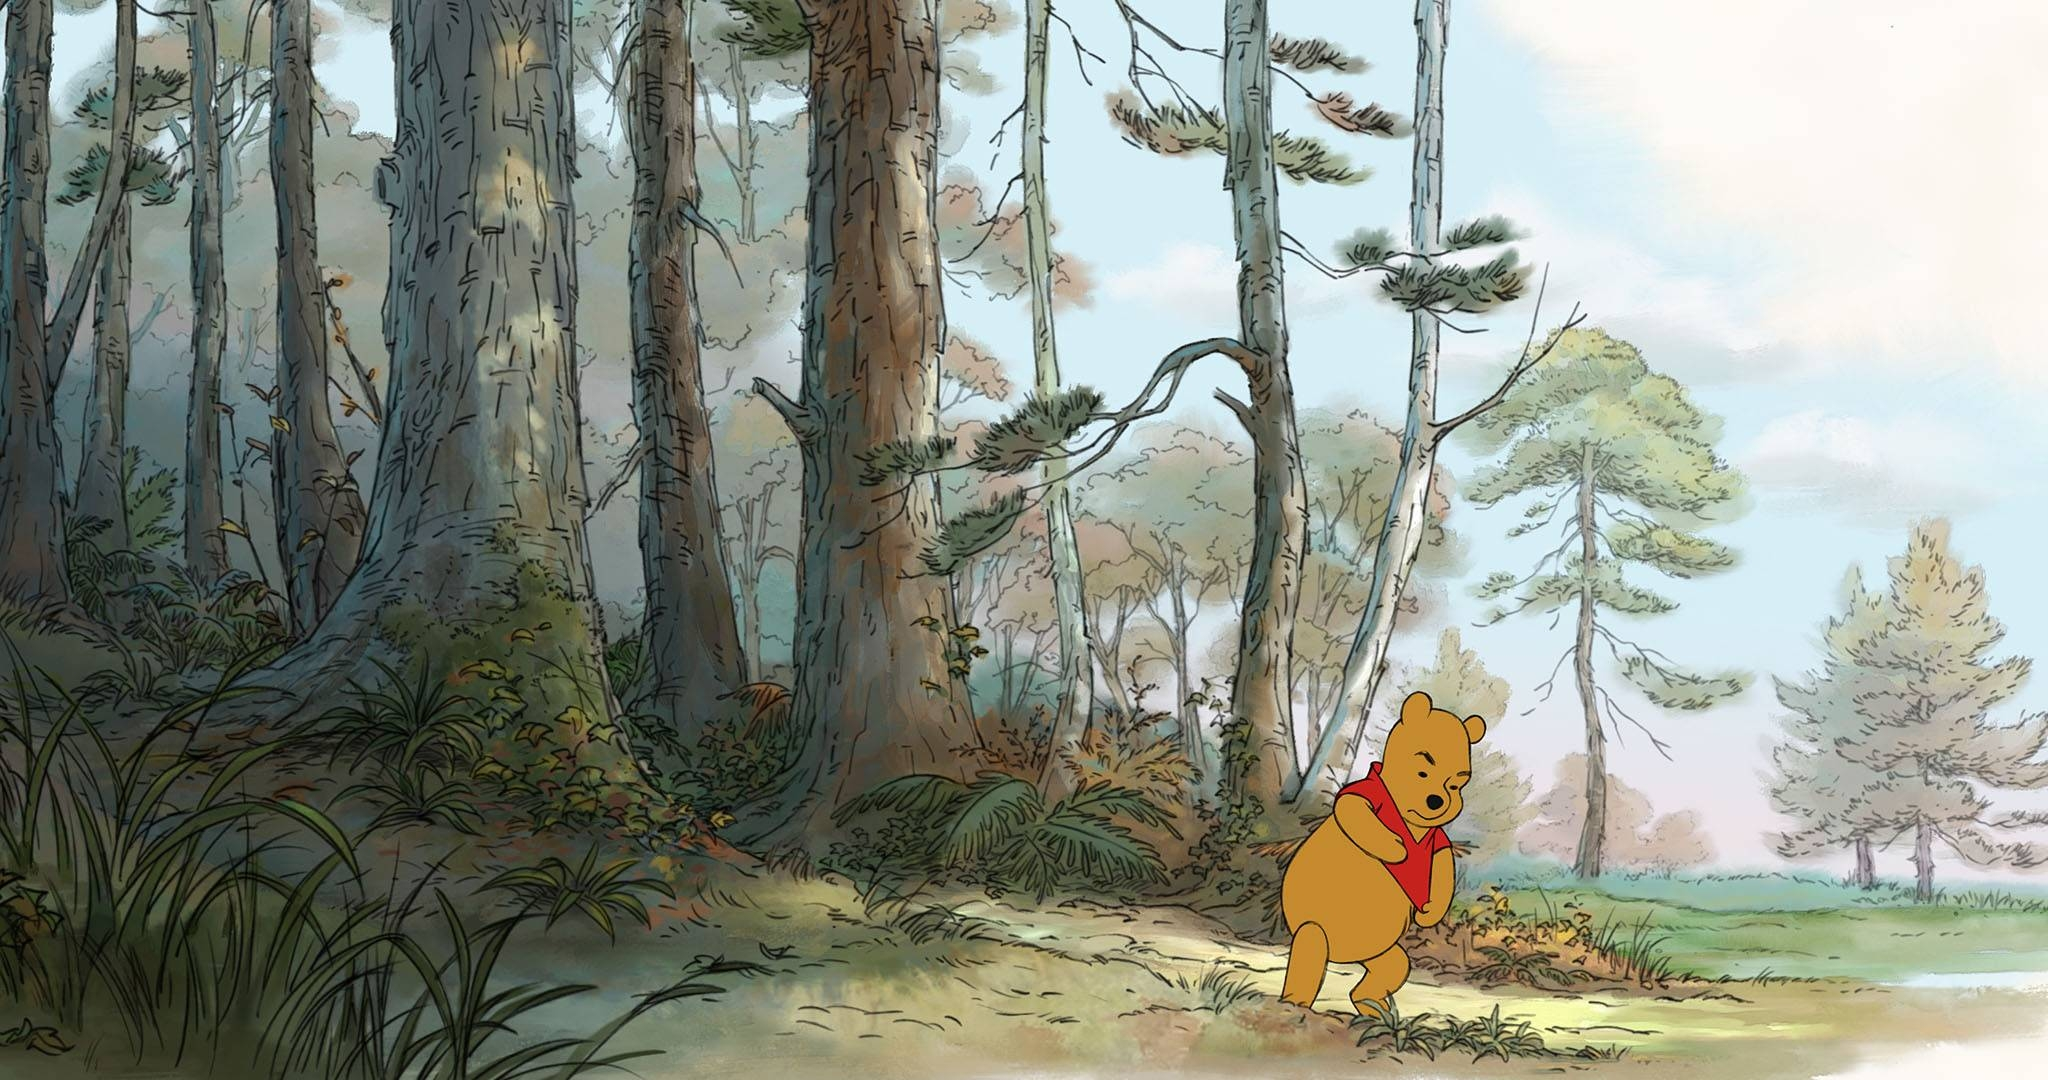 Winnie The Pooh Movie Images | Collider Intended For Best And Newest Classic Pooh Art (View 18 of 20)